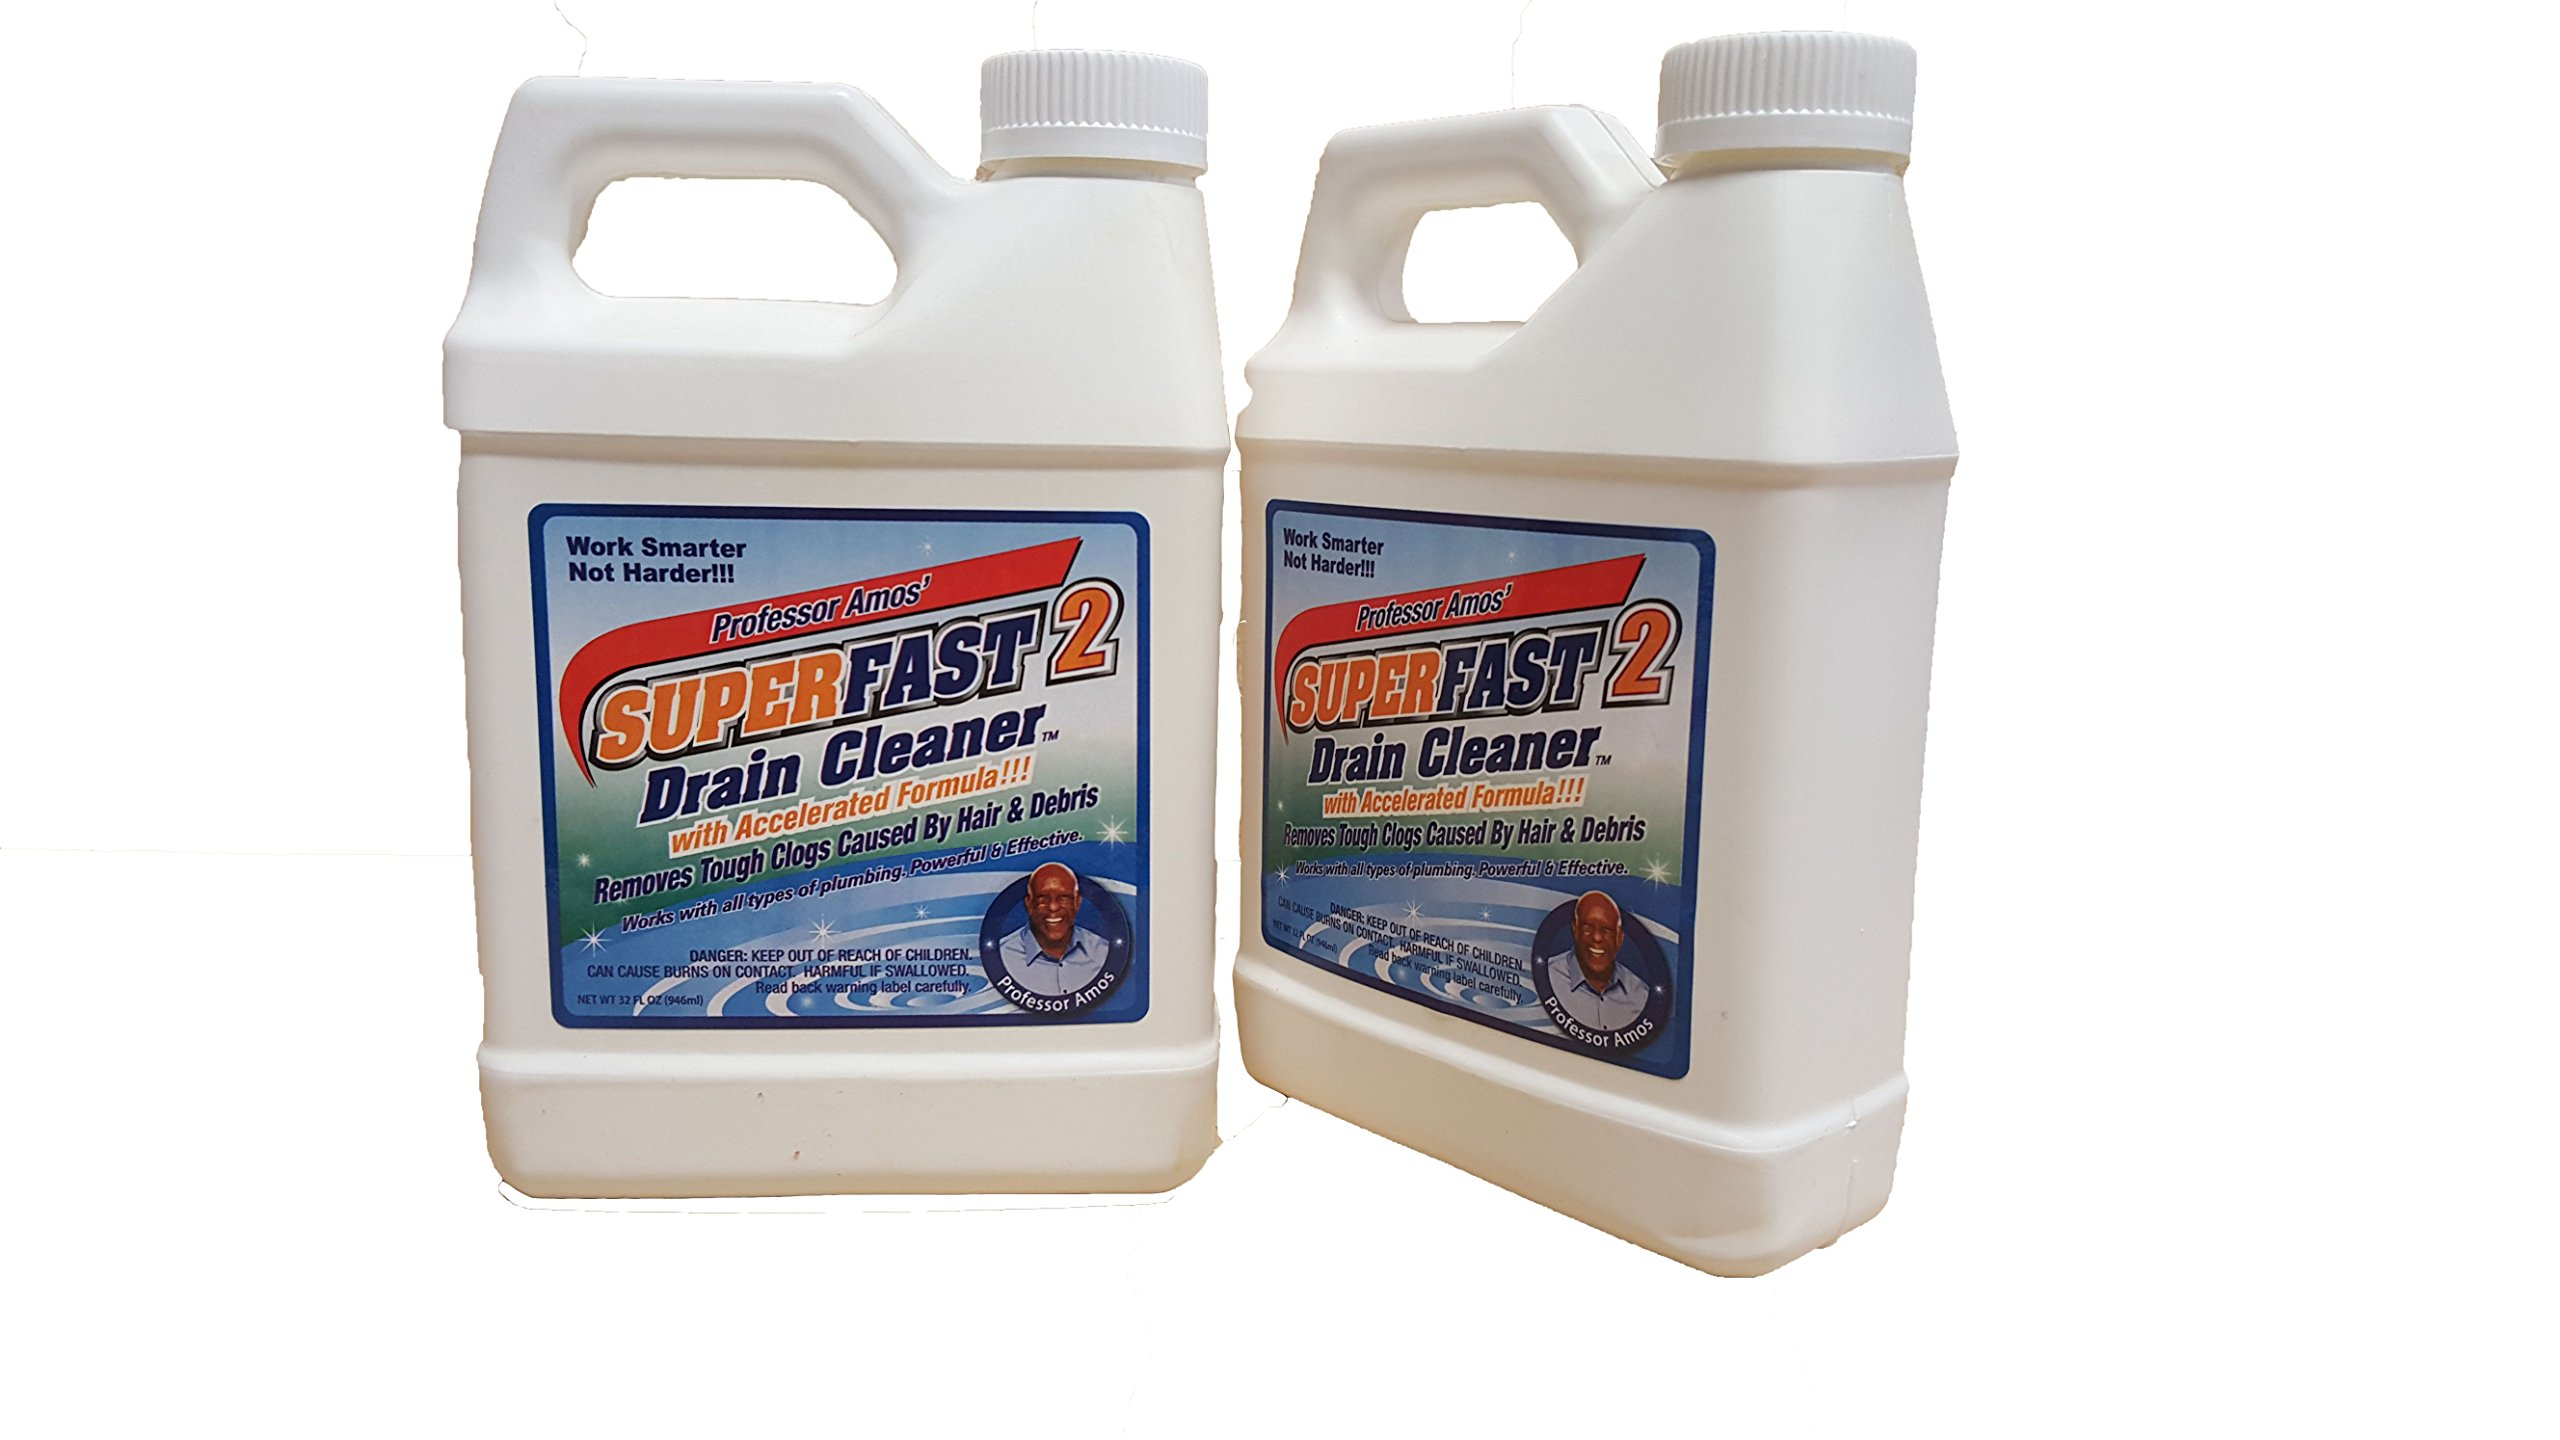 2-pack: Professor Amos' Superfast Drain Cleaner - 32oz Each